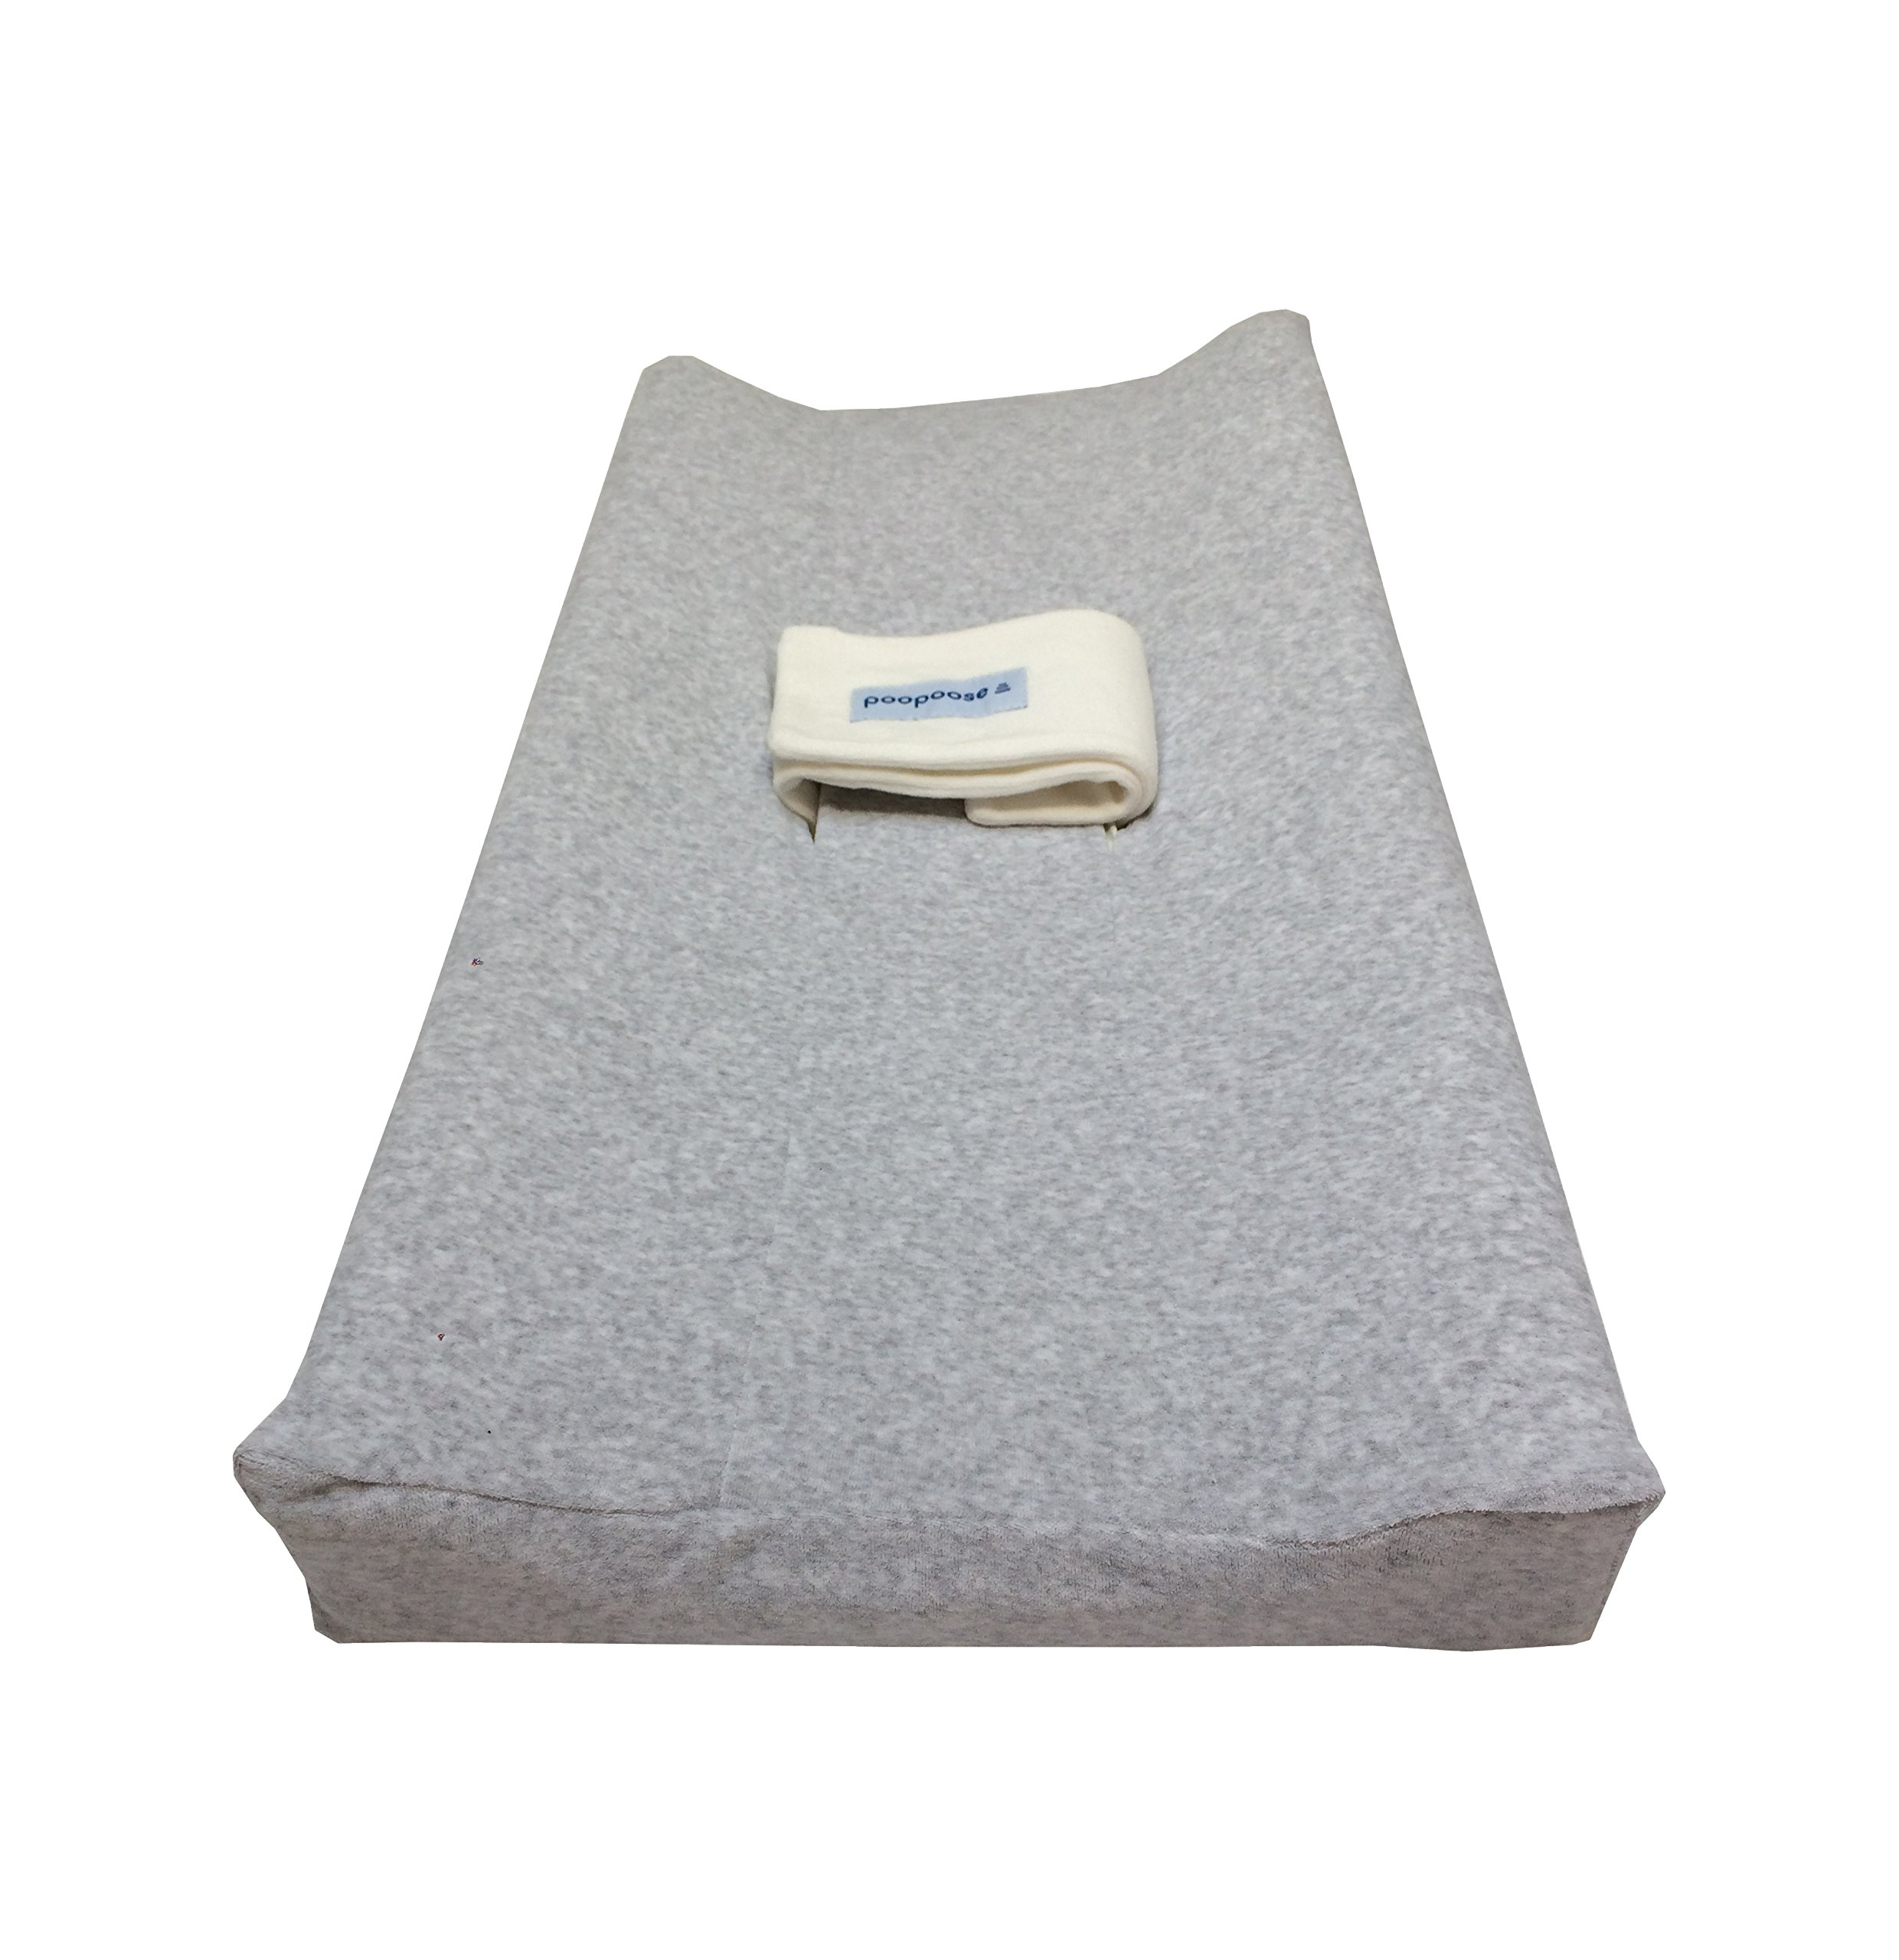 PooPoose Changing Pad Cover (Varsity Grey) by PooPoose